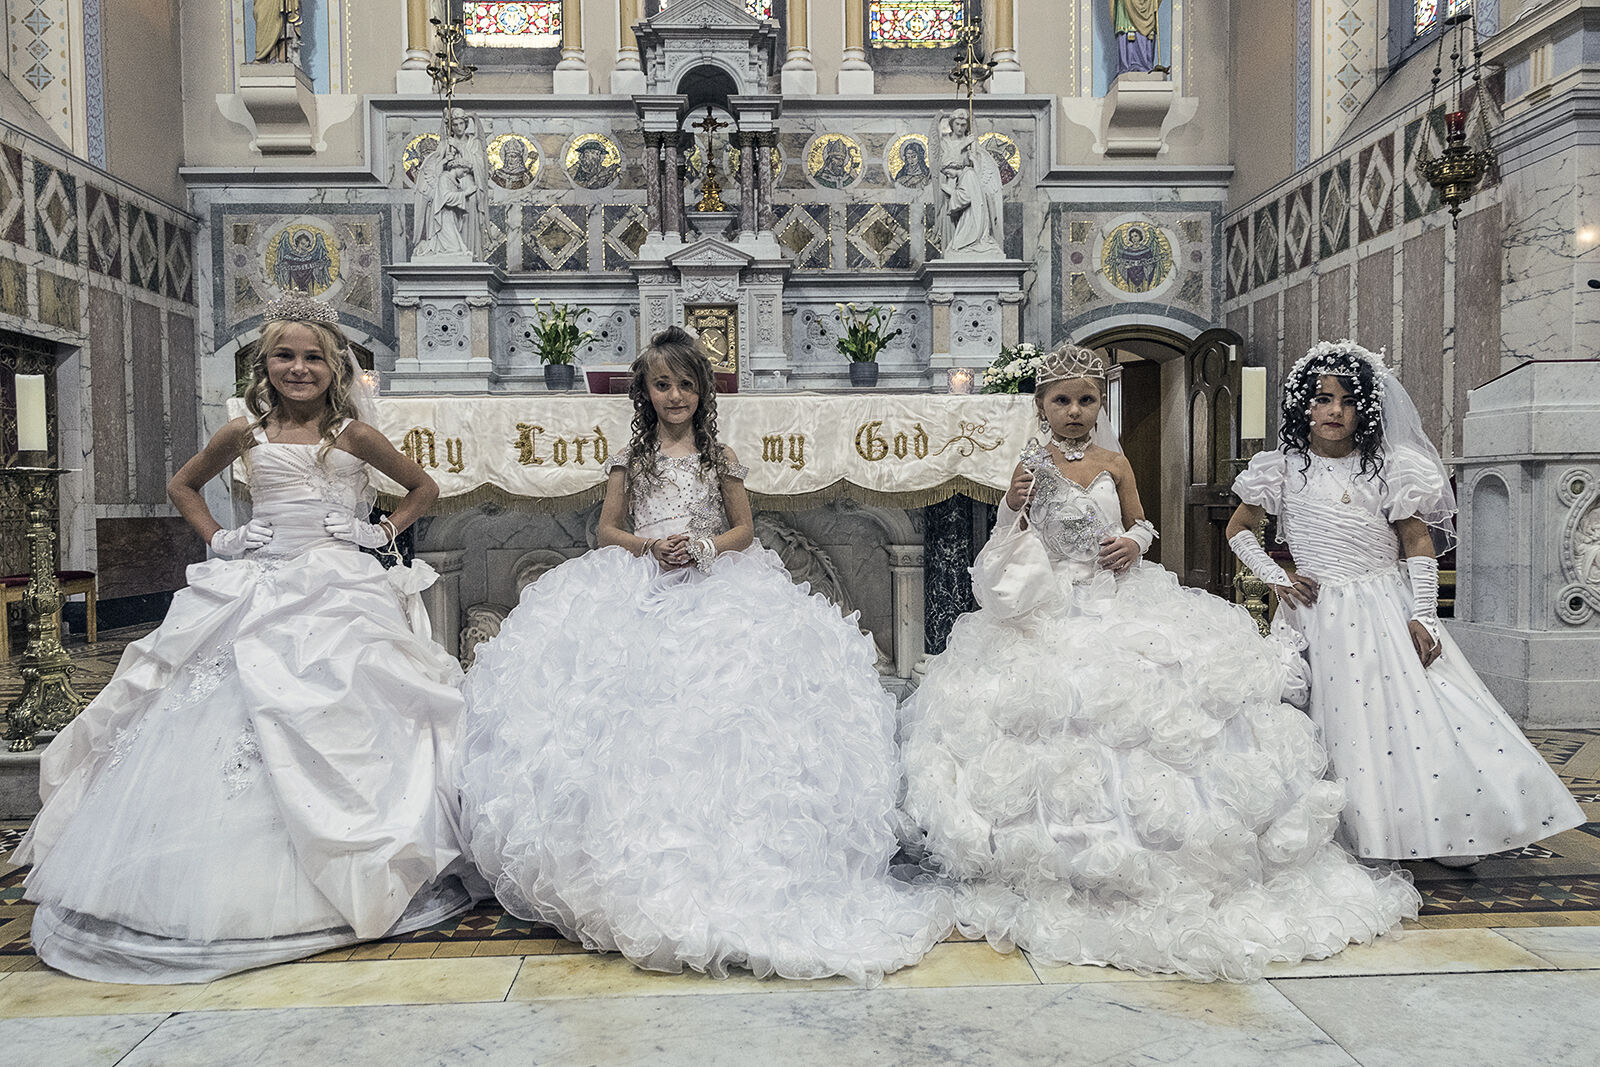 Four Reilly Girls on their First Holy Communion, Tipperary, Ireland 2019